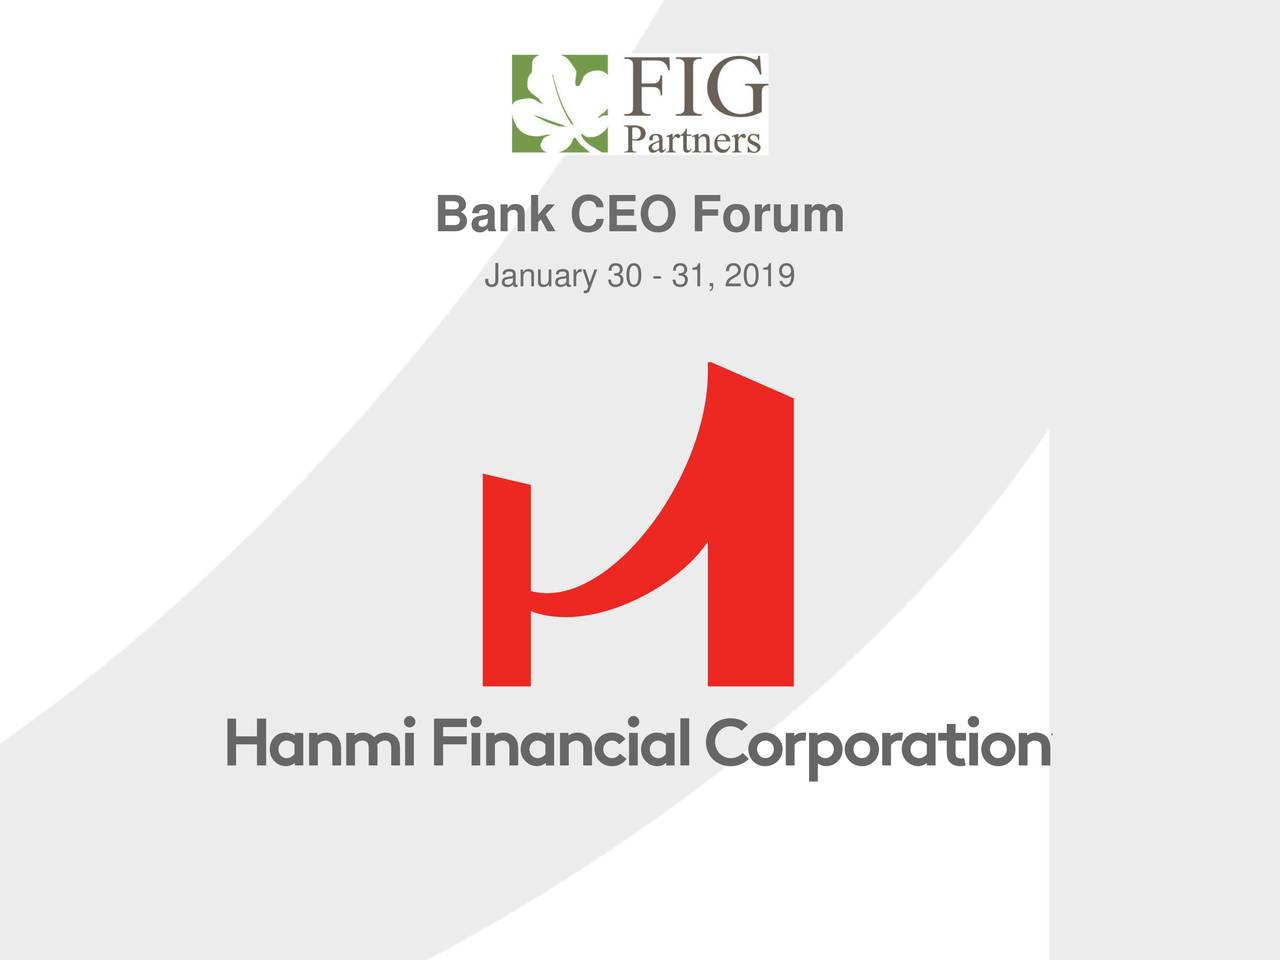 Hanmi Financial (HAFC) Presents At 23rd FIG Partners Bank